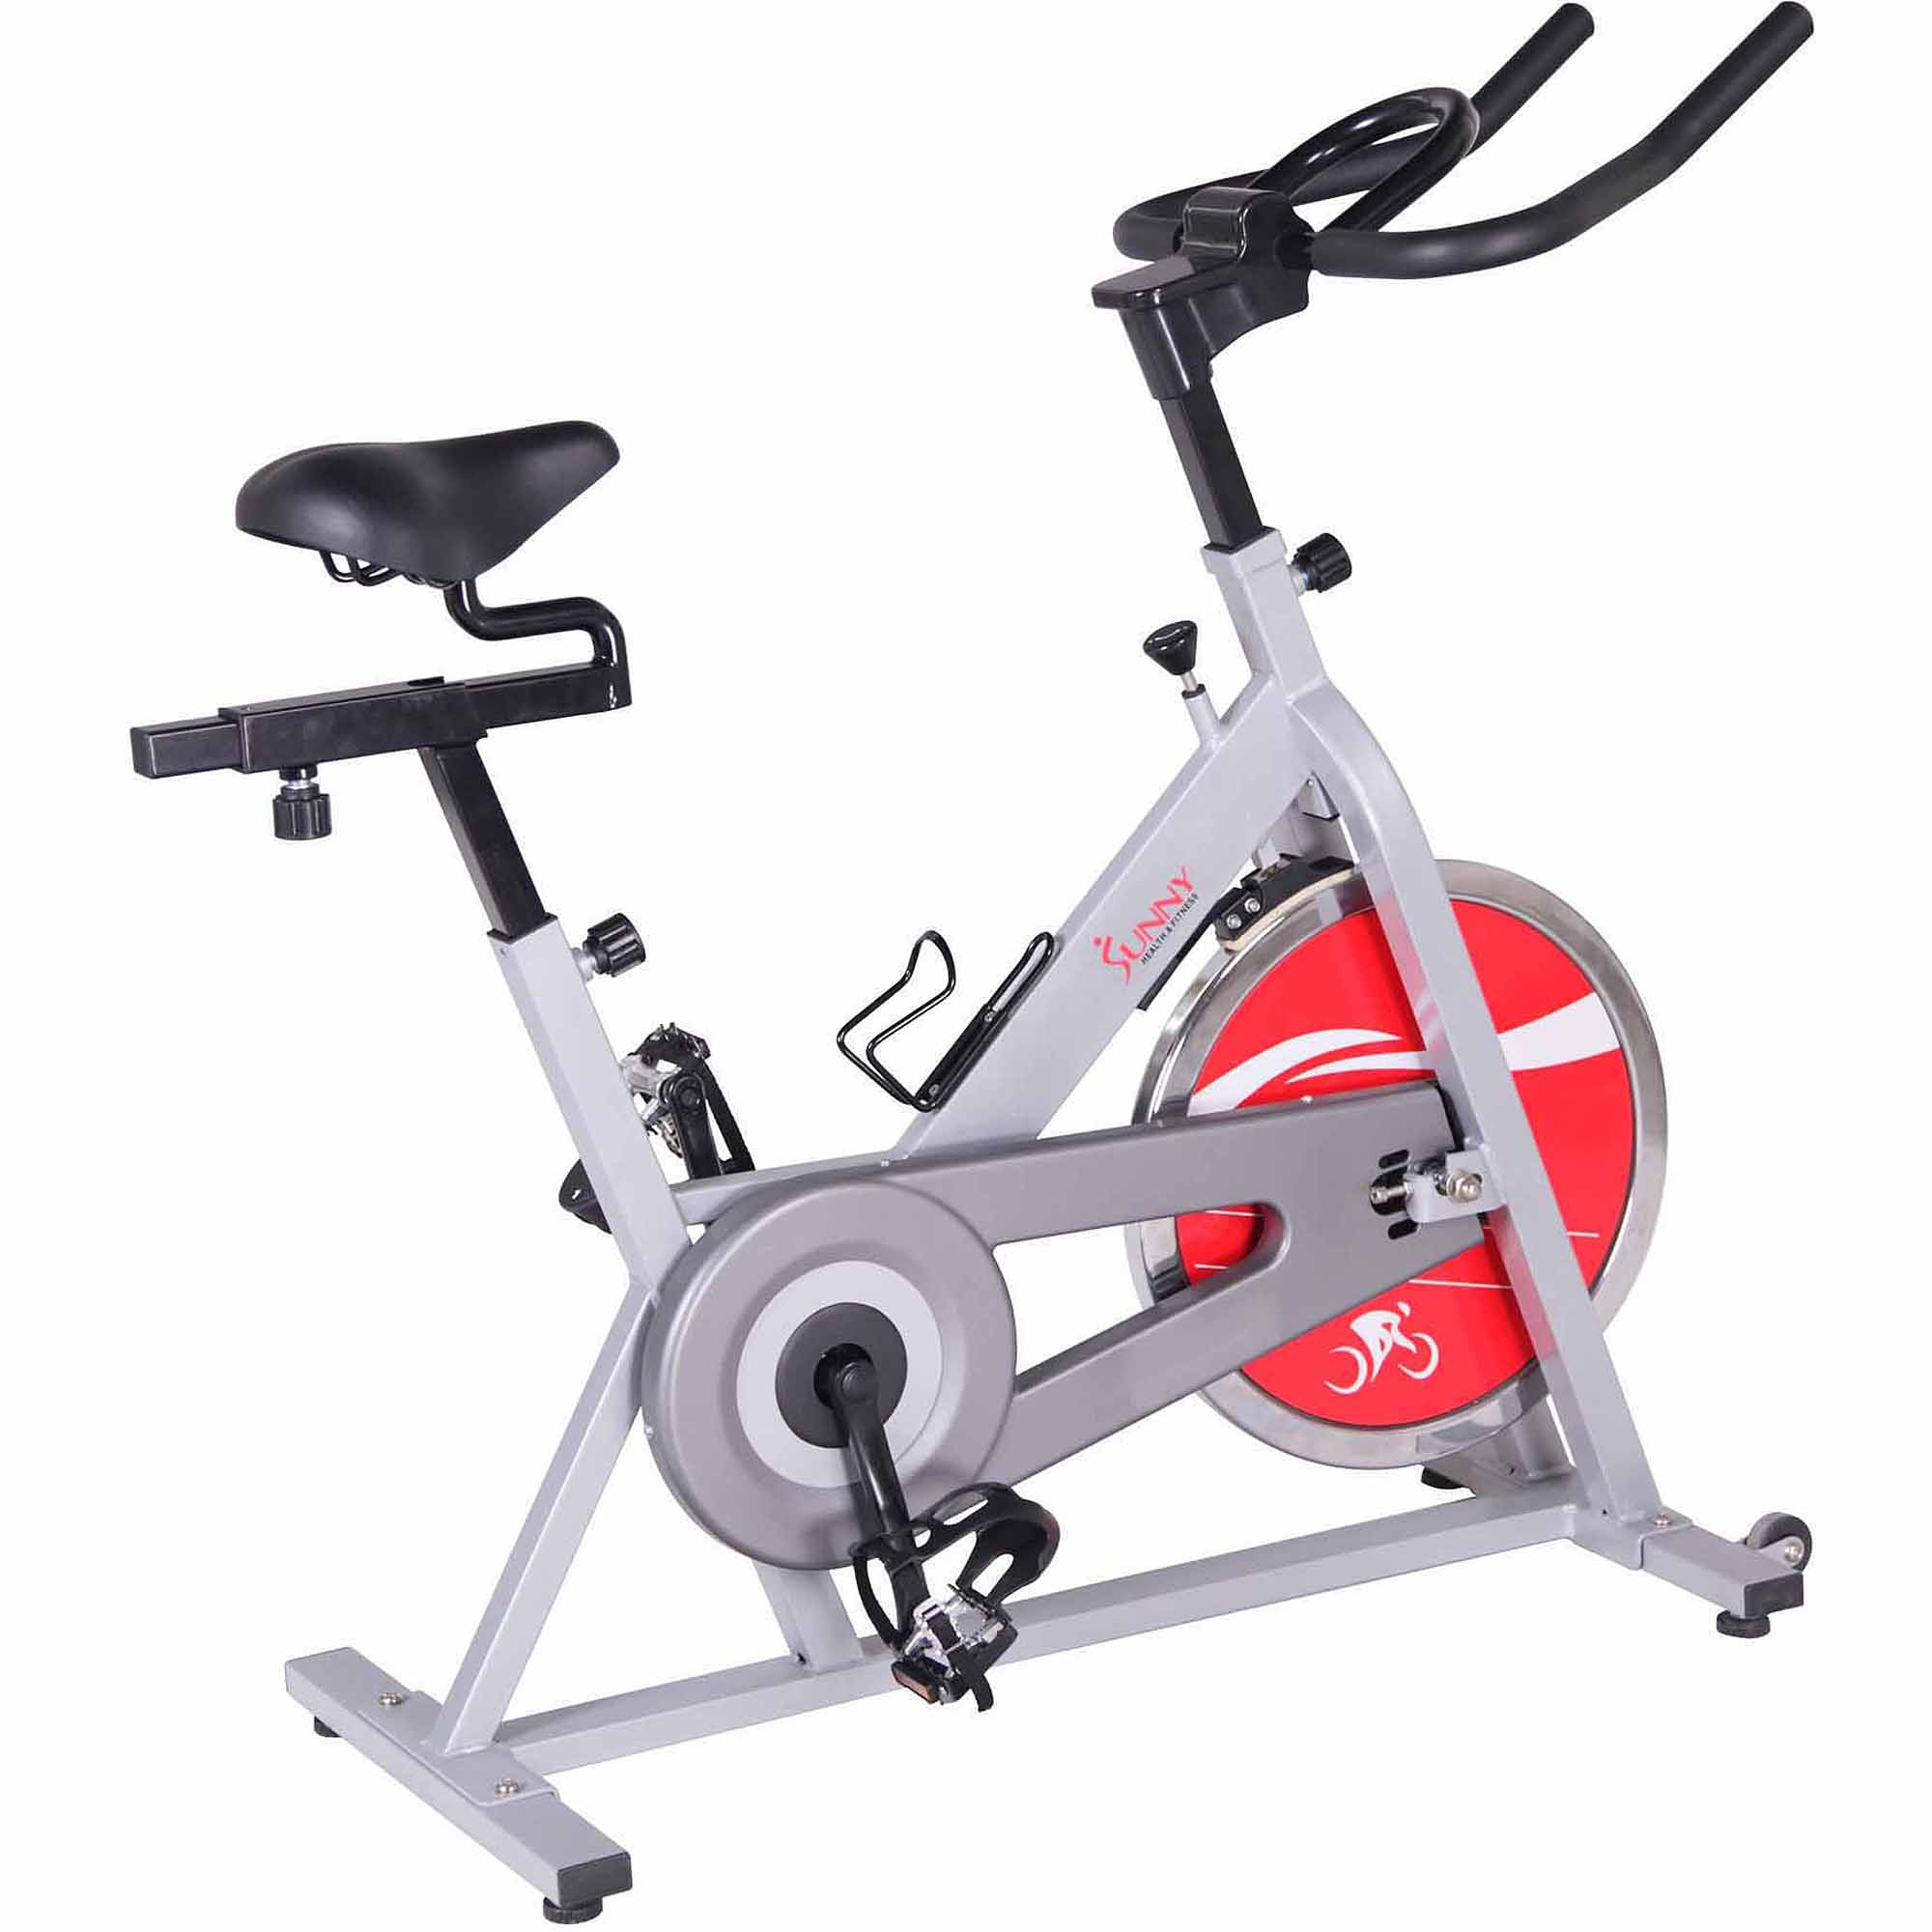 Sunny Health and Fitness SF-B1001S Indoor Cycling Exercise Bike